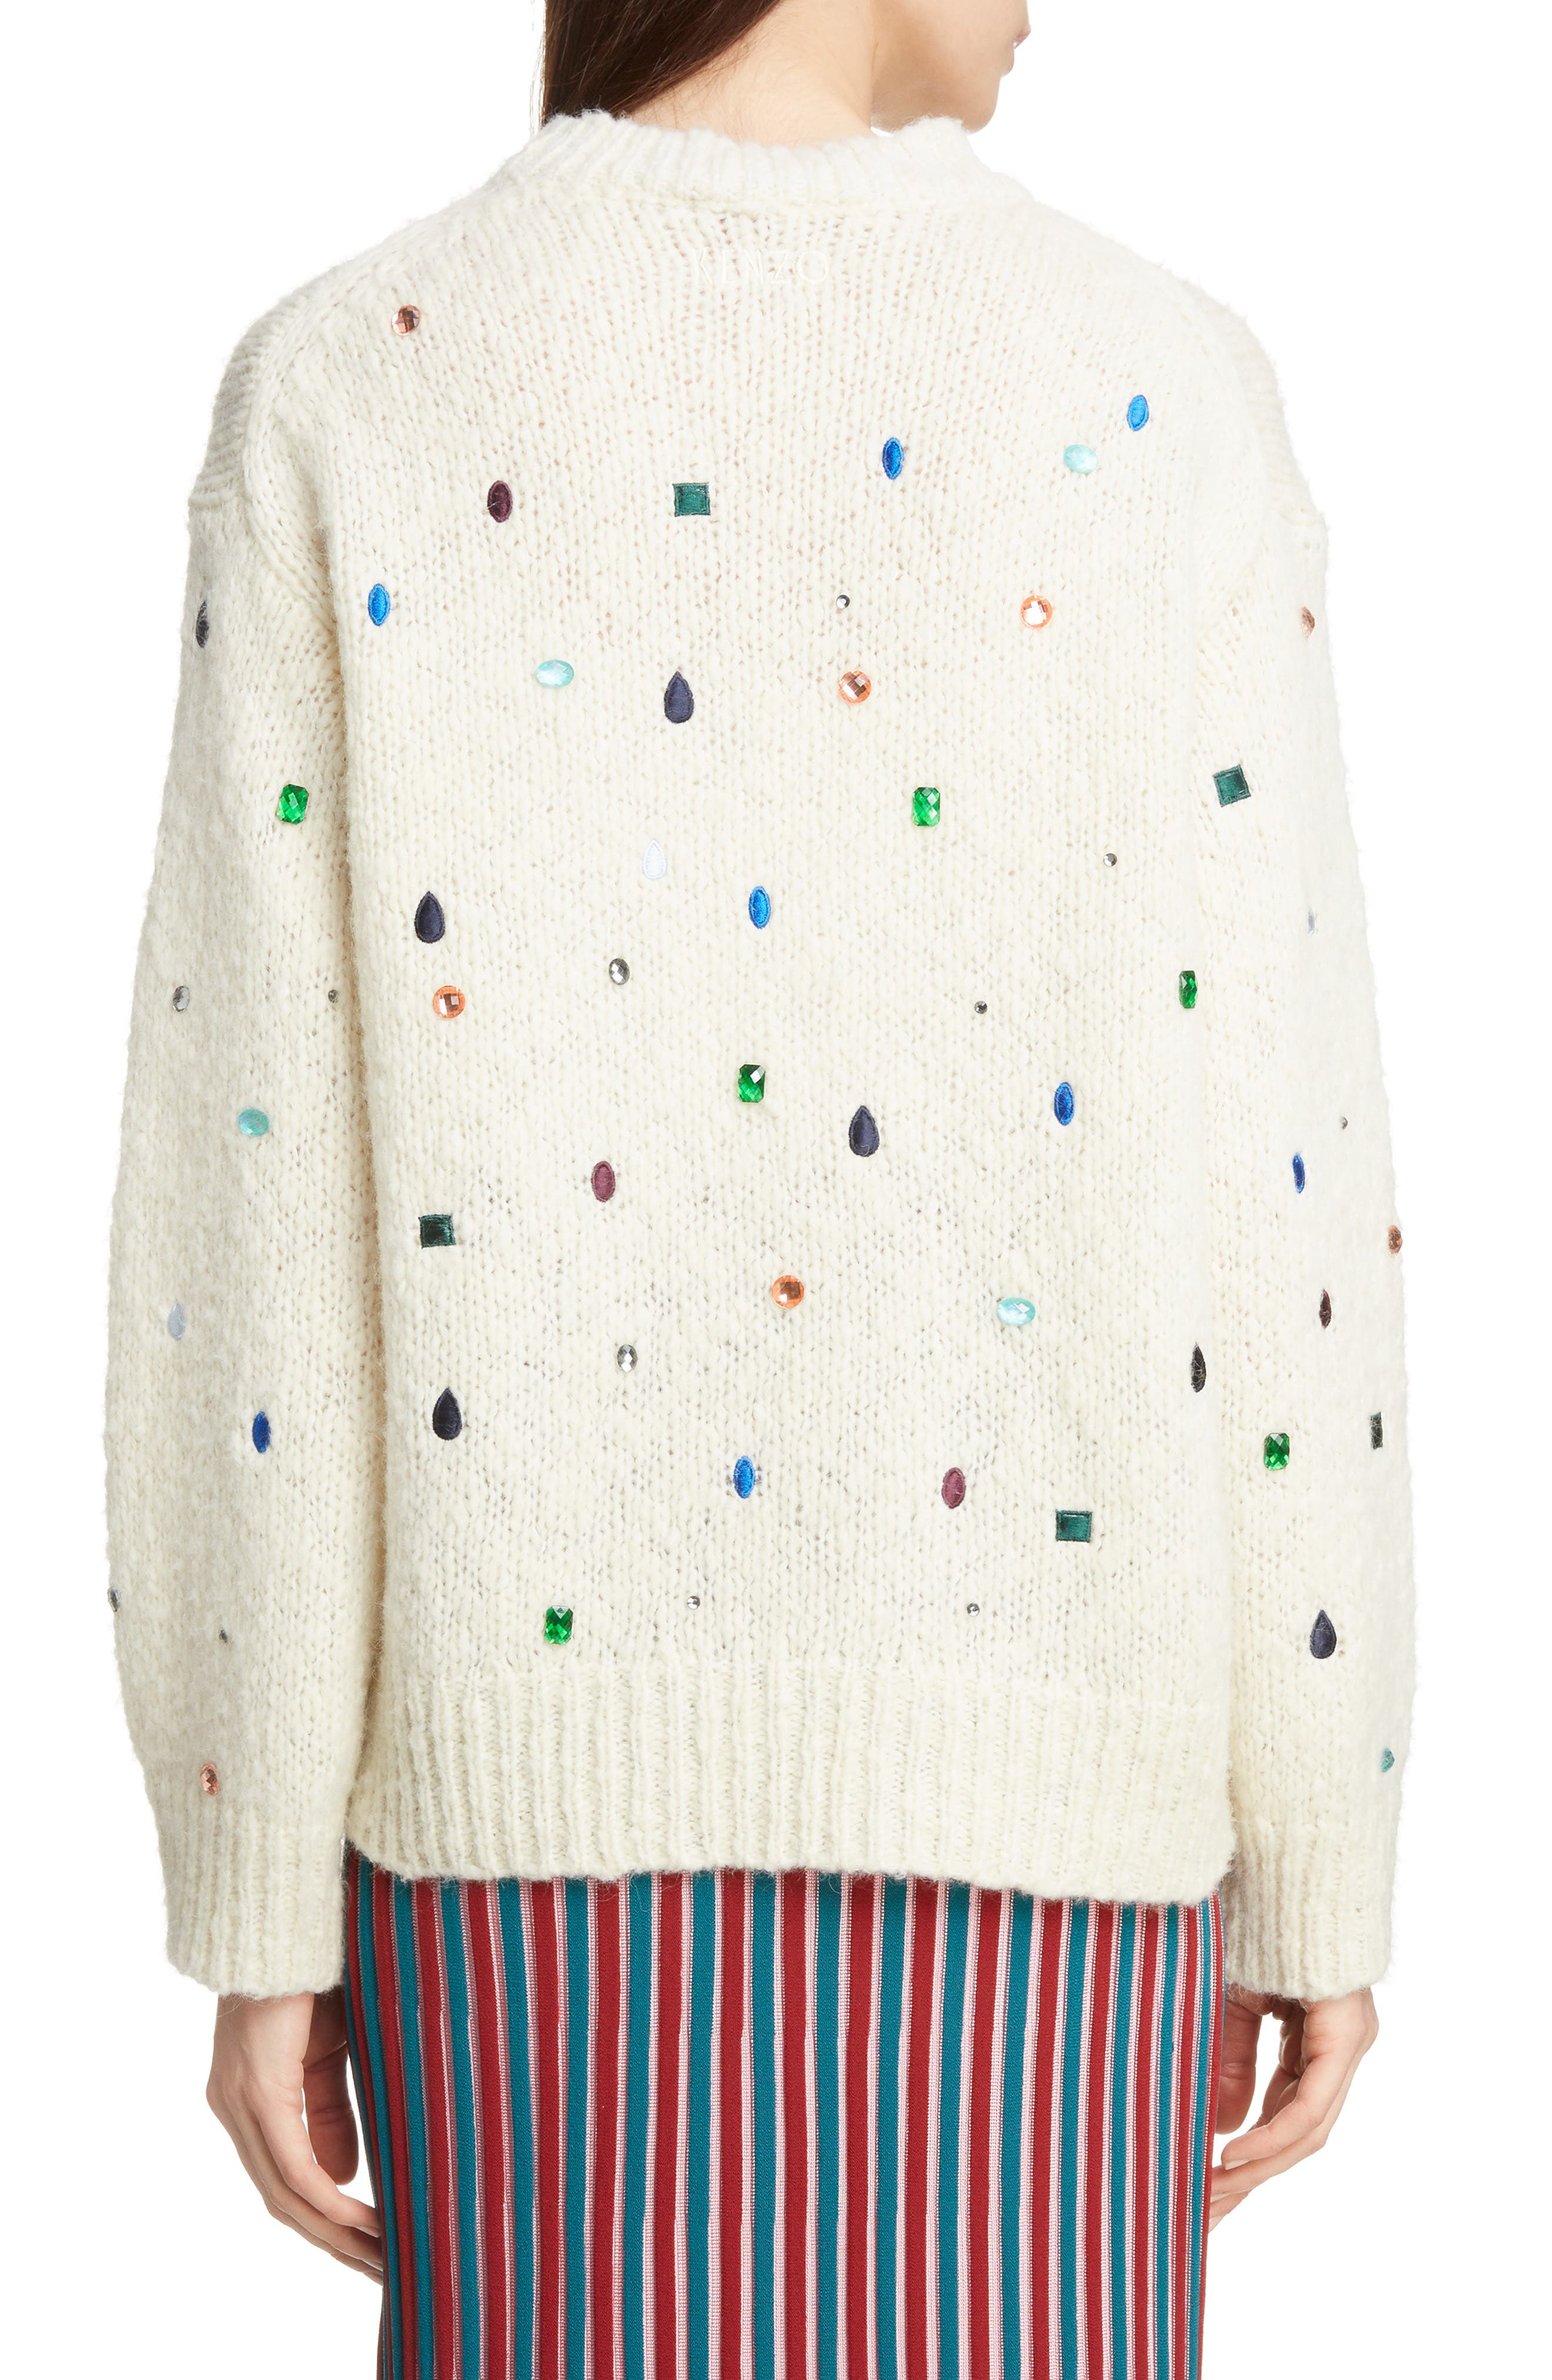 Embellished Comfort Sweater,                             Alternate thumbnail 2, color,                             WHITE